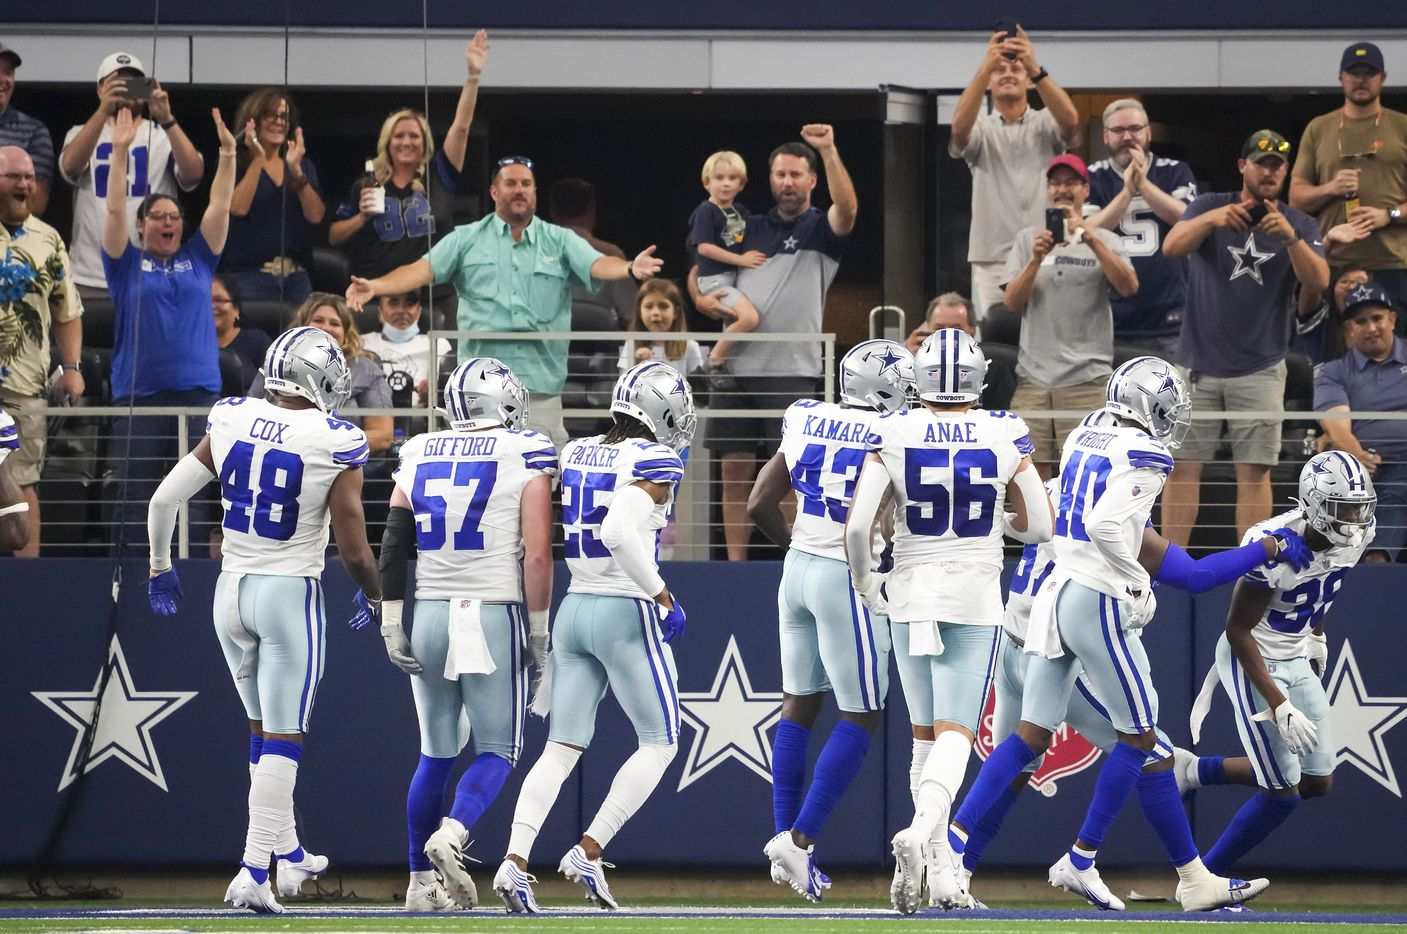 Dallas Cowboys cornerback Israel Mukuamu (38) celebrates after intercepting a pass during the first half of a preseason NFL football game against the Jacksonville Jaguars at AT&T Stadium on Sunday, Aug. 29, 2021, in Arlington. (Smiley N. Pool/The Dallas Morning News)